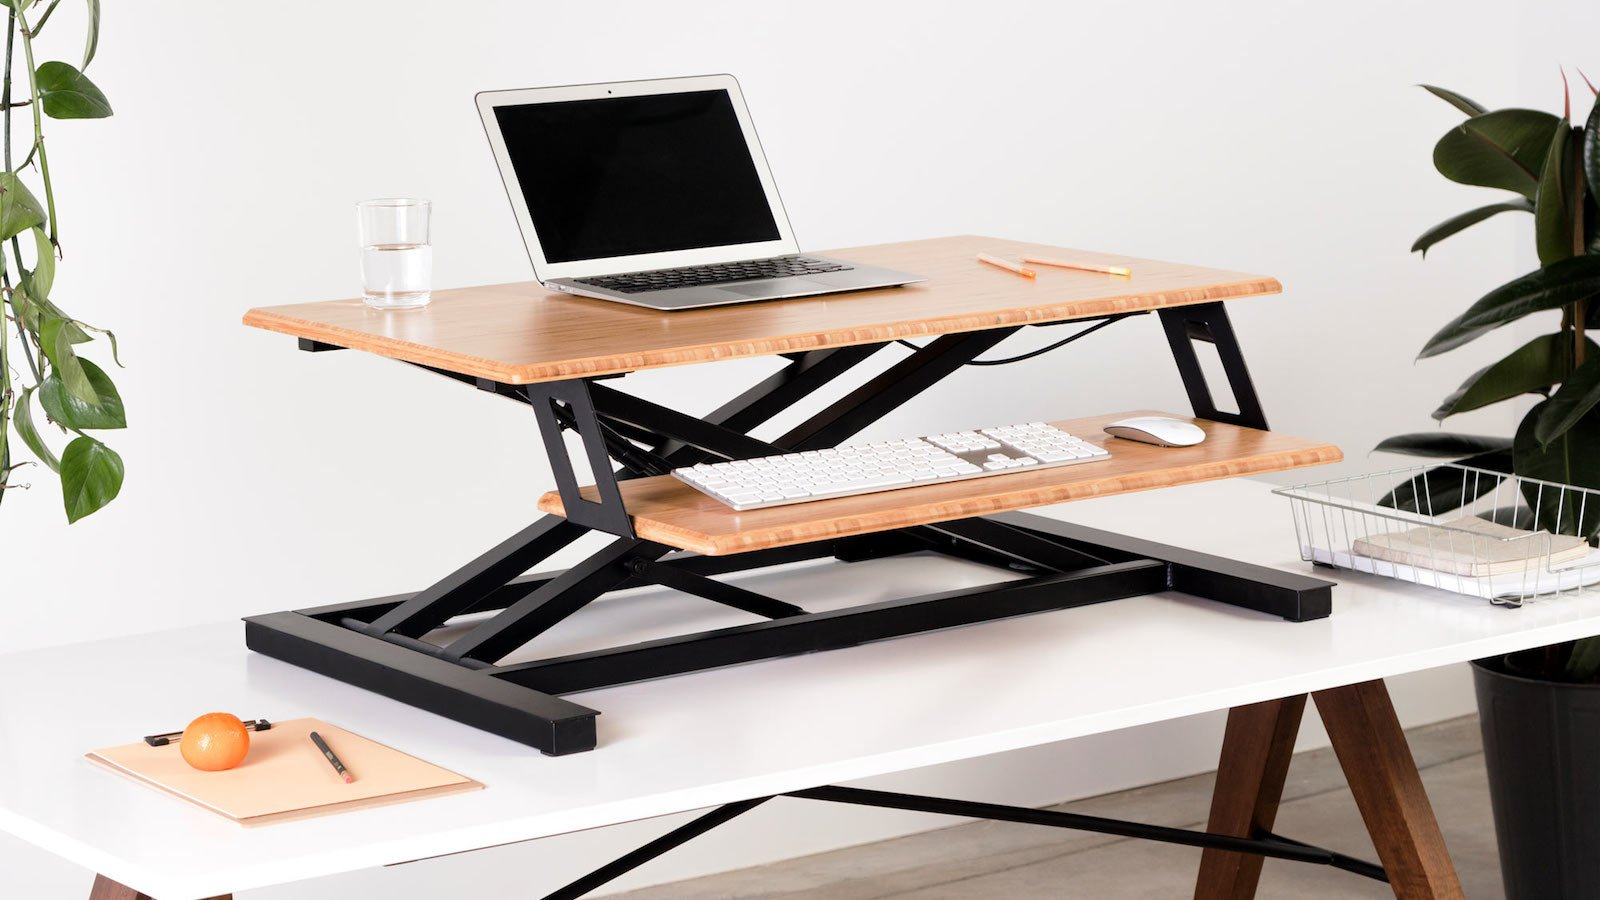 Fully Cooper Standing Desk Converter gives you the freedom to sit or stand while your work